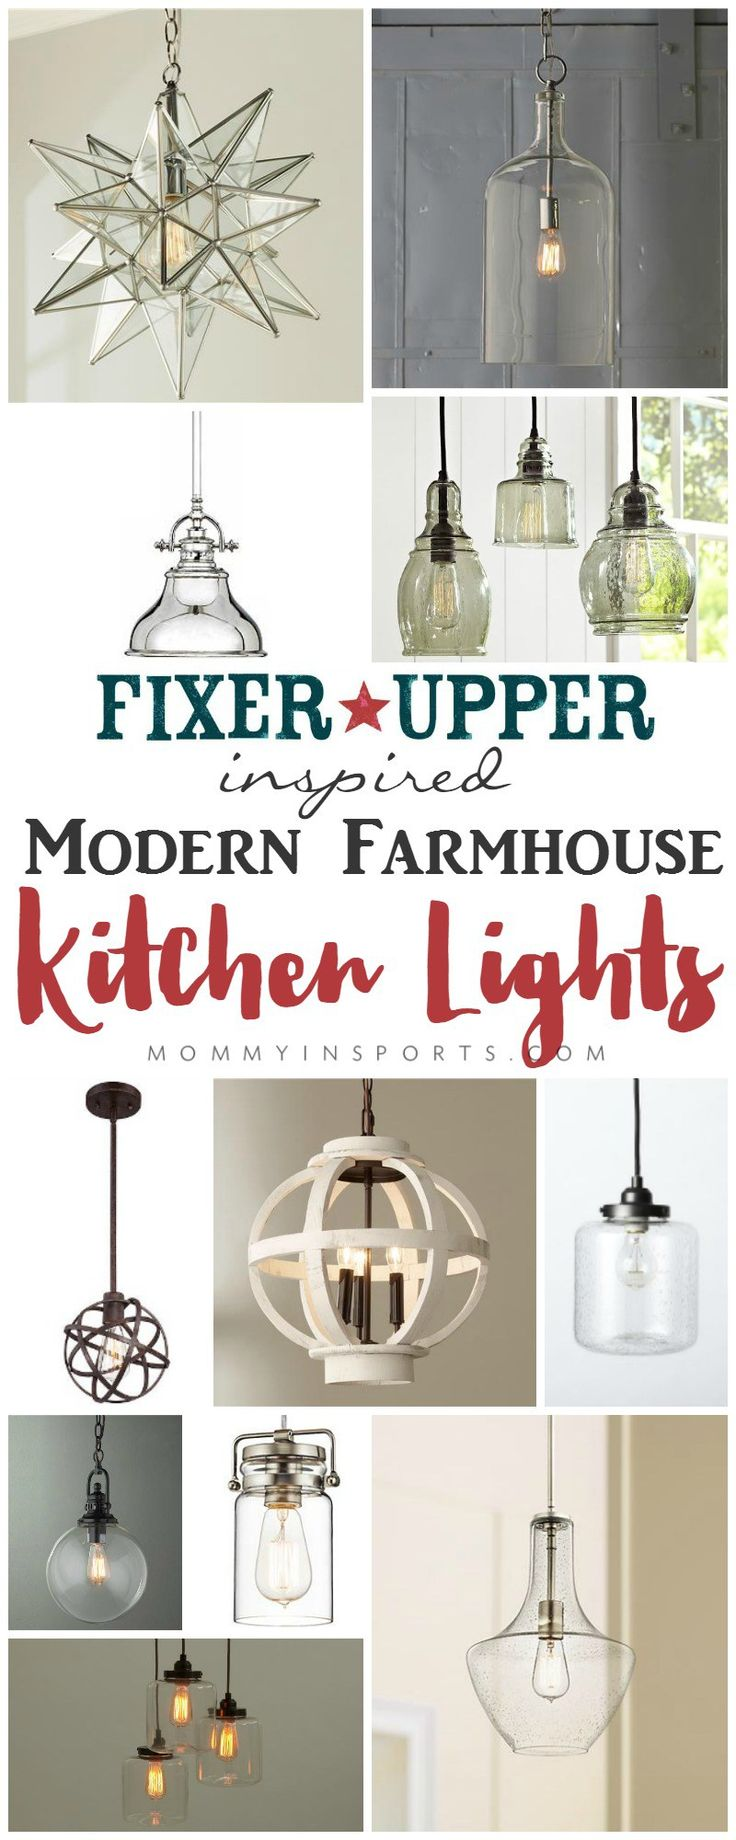 Kitchen Light 17 Best Ideas About Farmhouse Kitchen Lighting On Pinterest